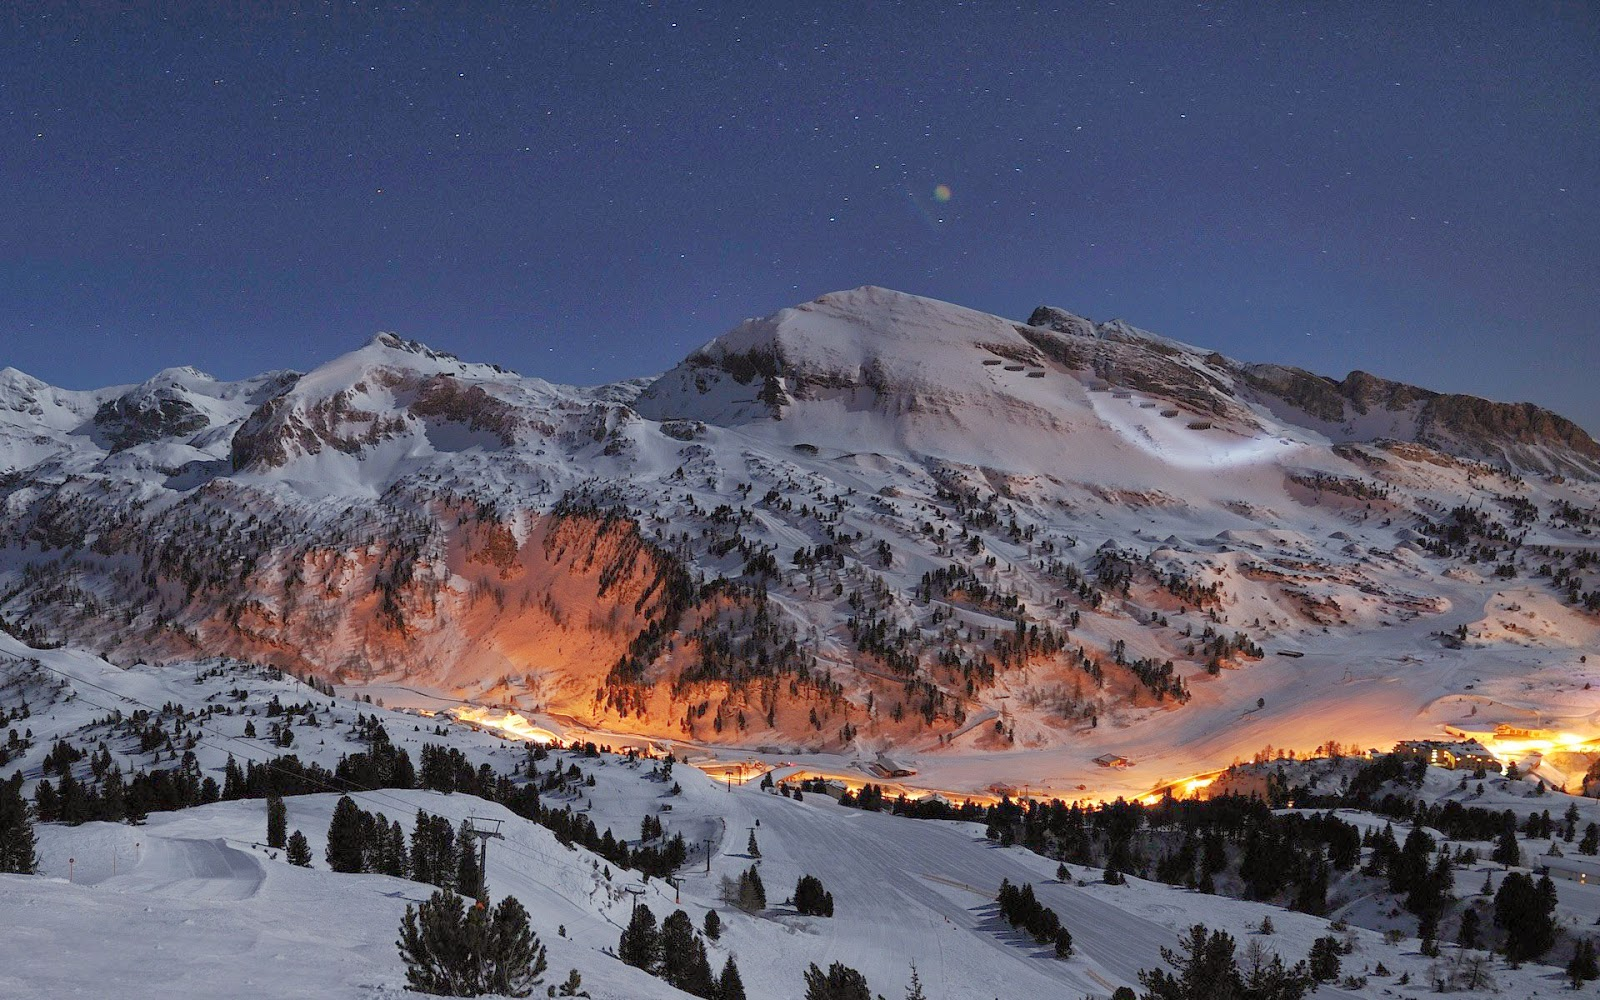 snow-night-mountain-images-beautiful-nature-images-wallpapers